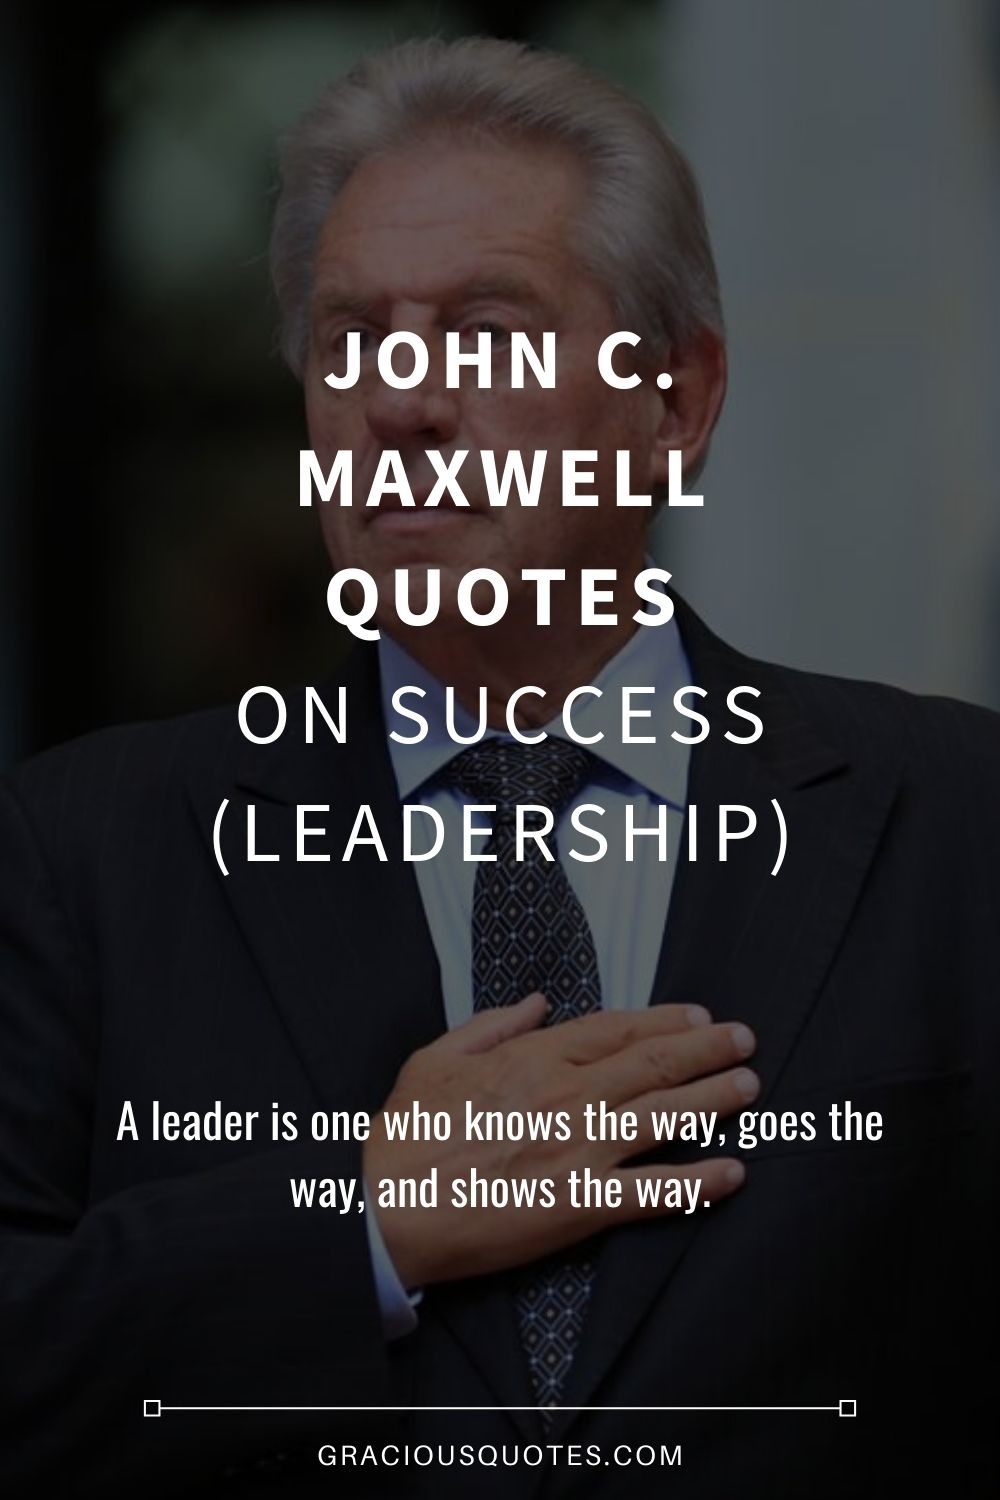 John C. Maxwell Quotes on Success (LEADERSHIP) - Gracious Quotes